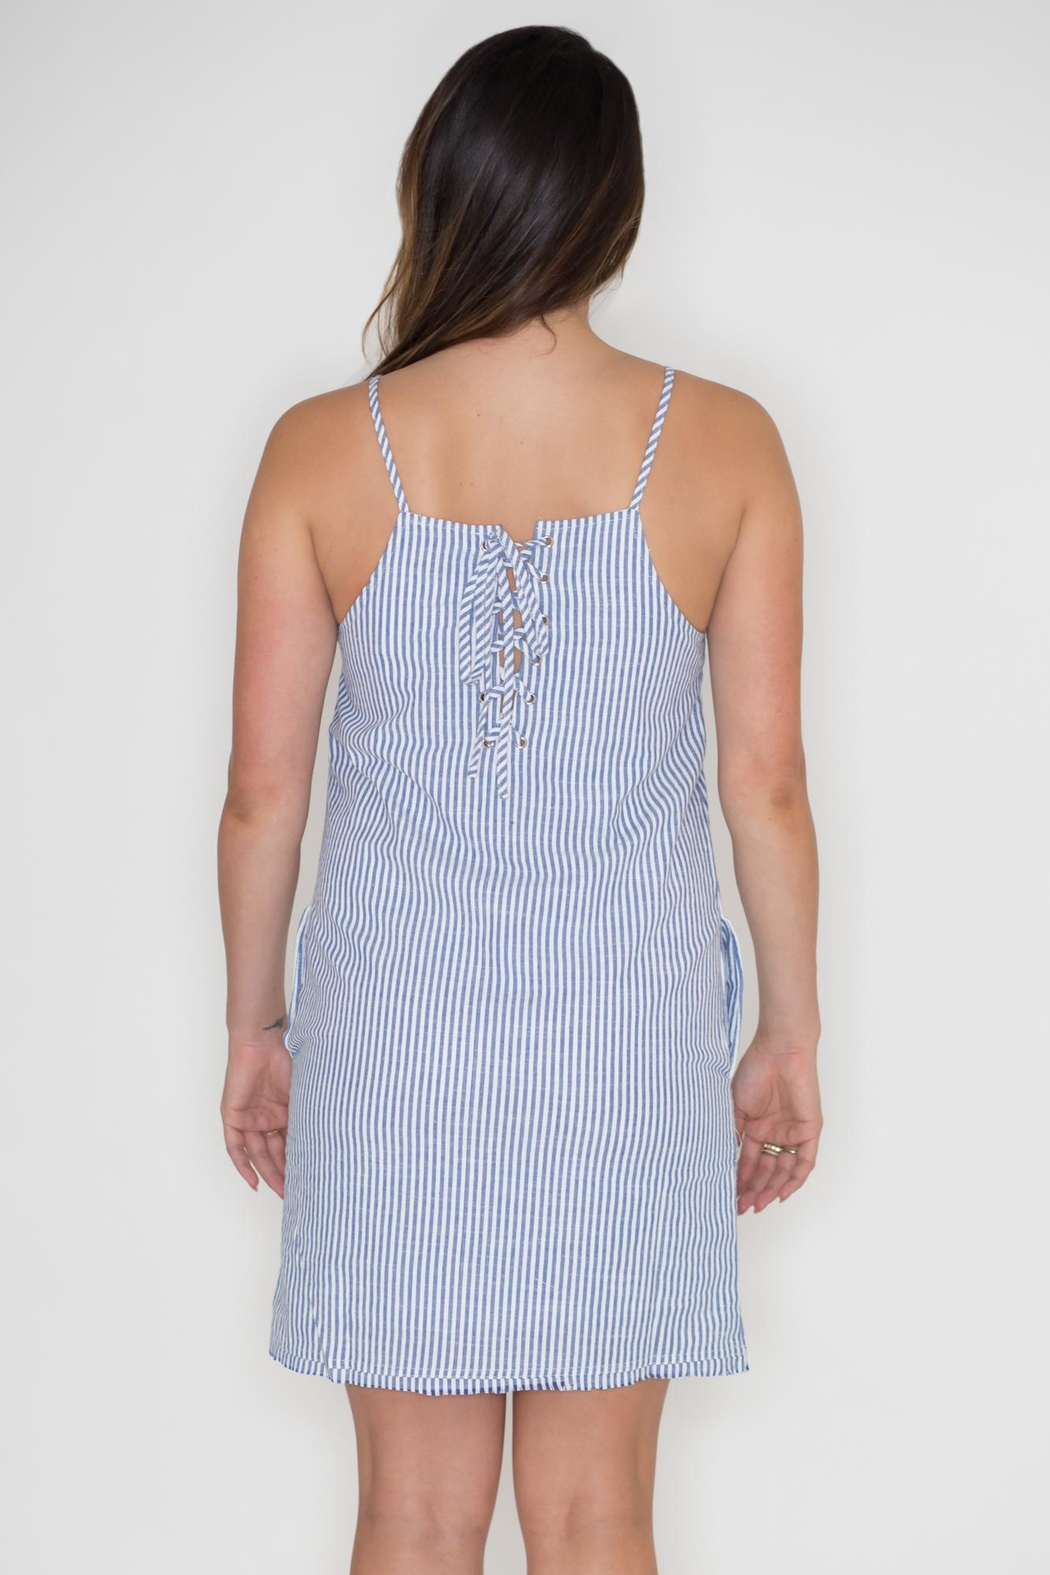 Very J Striped Denim Dress - Side Cropped Image